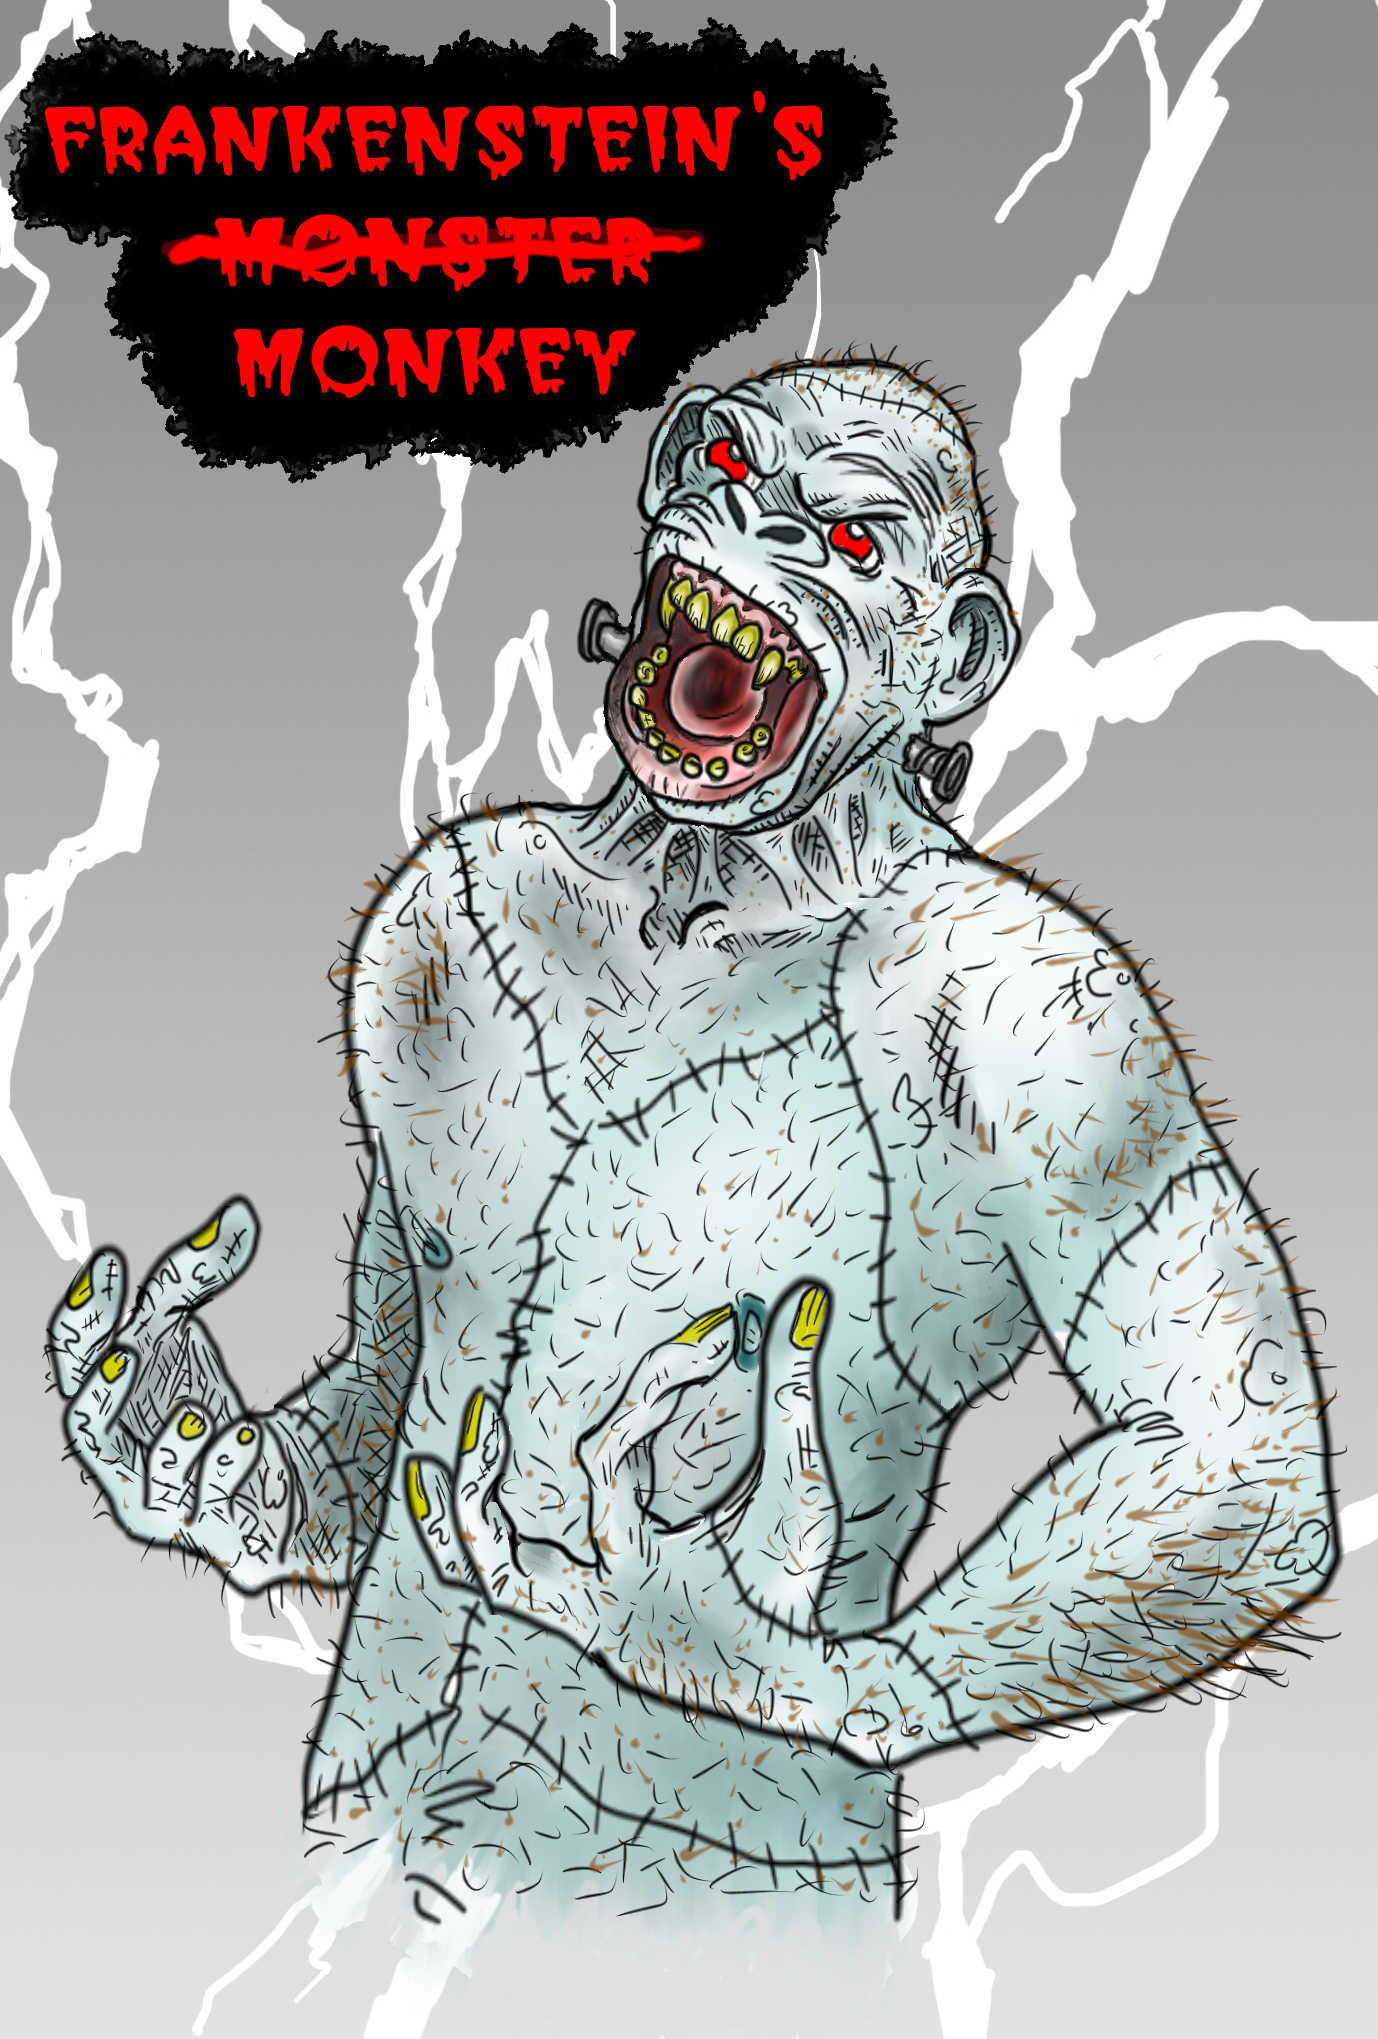 Frankensteins Monkey